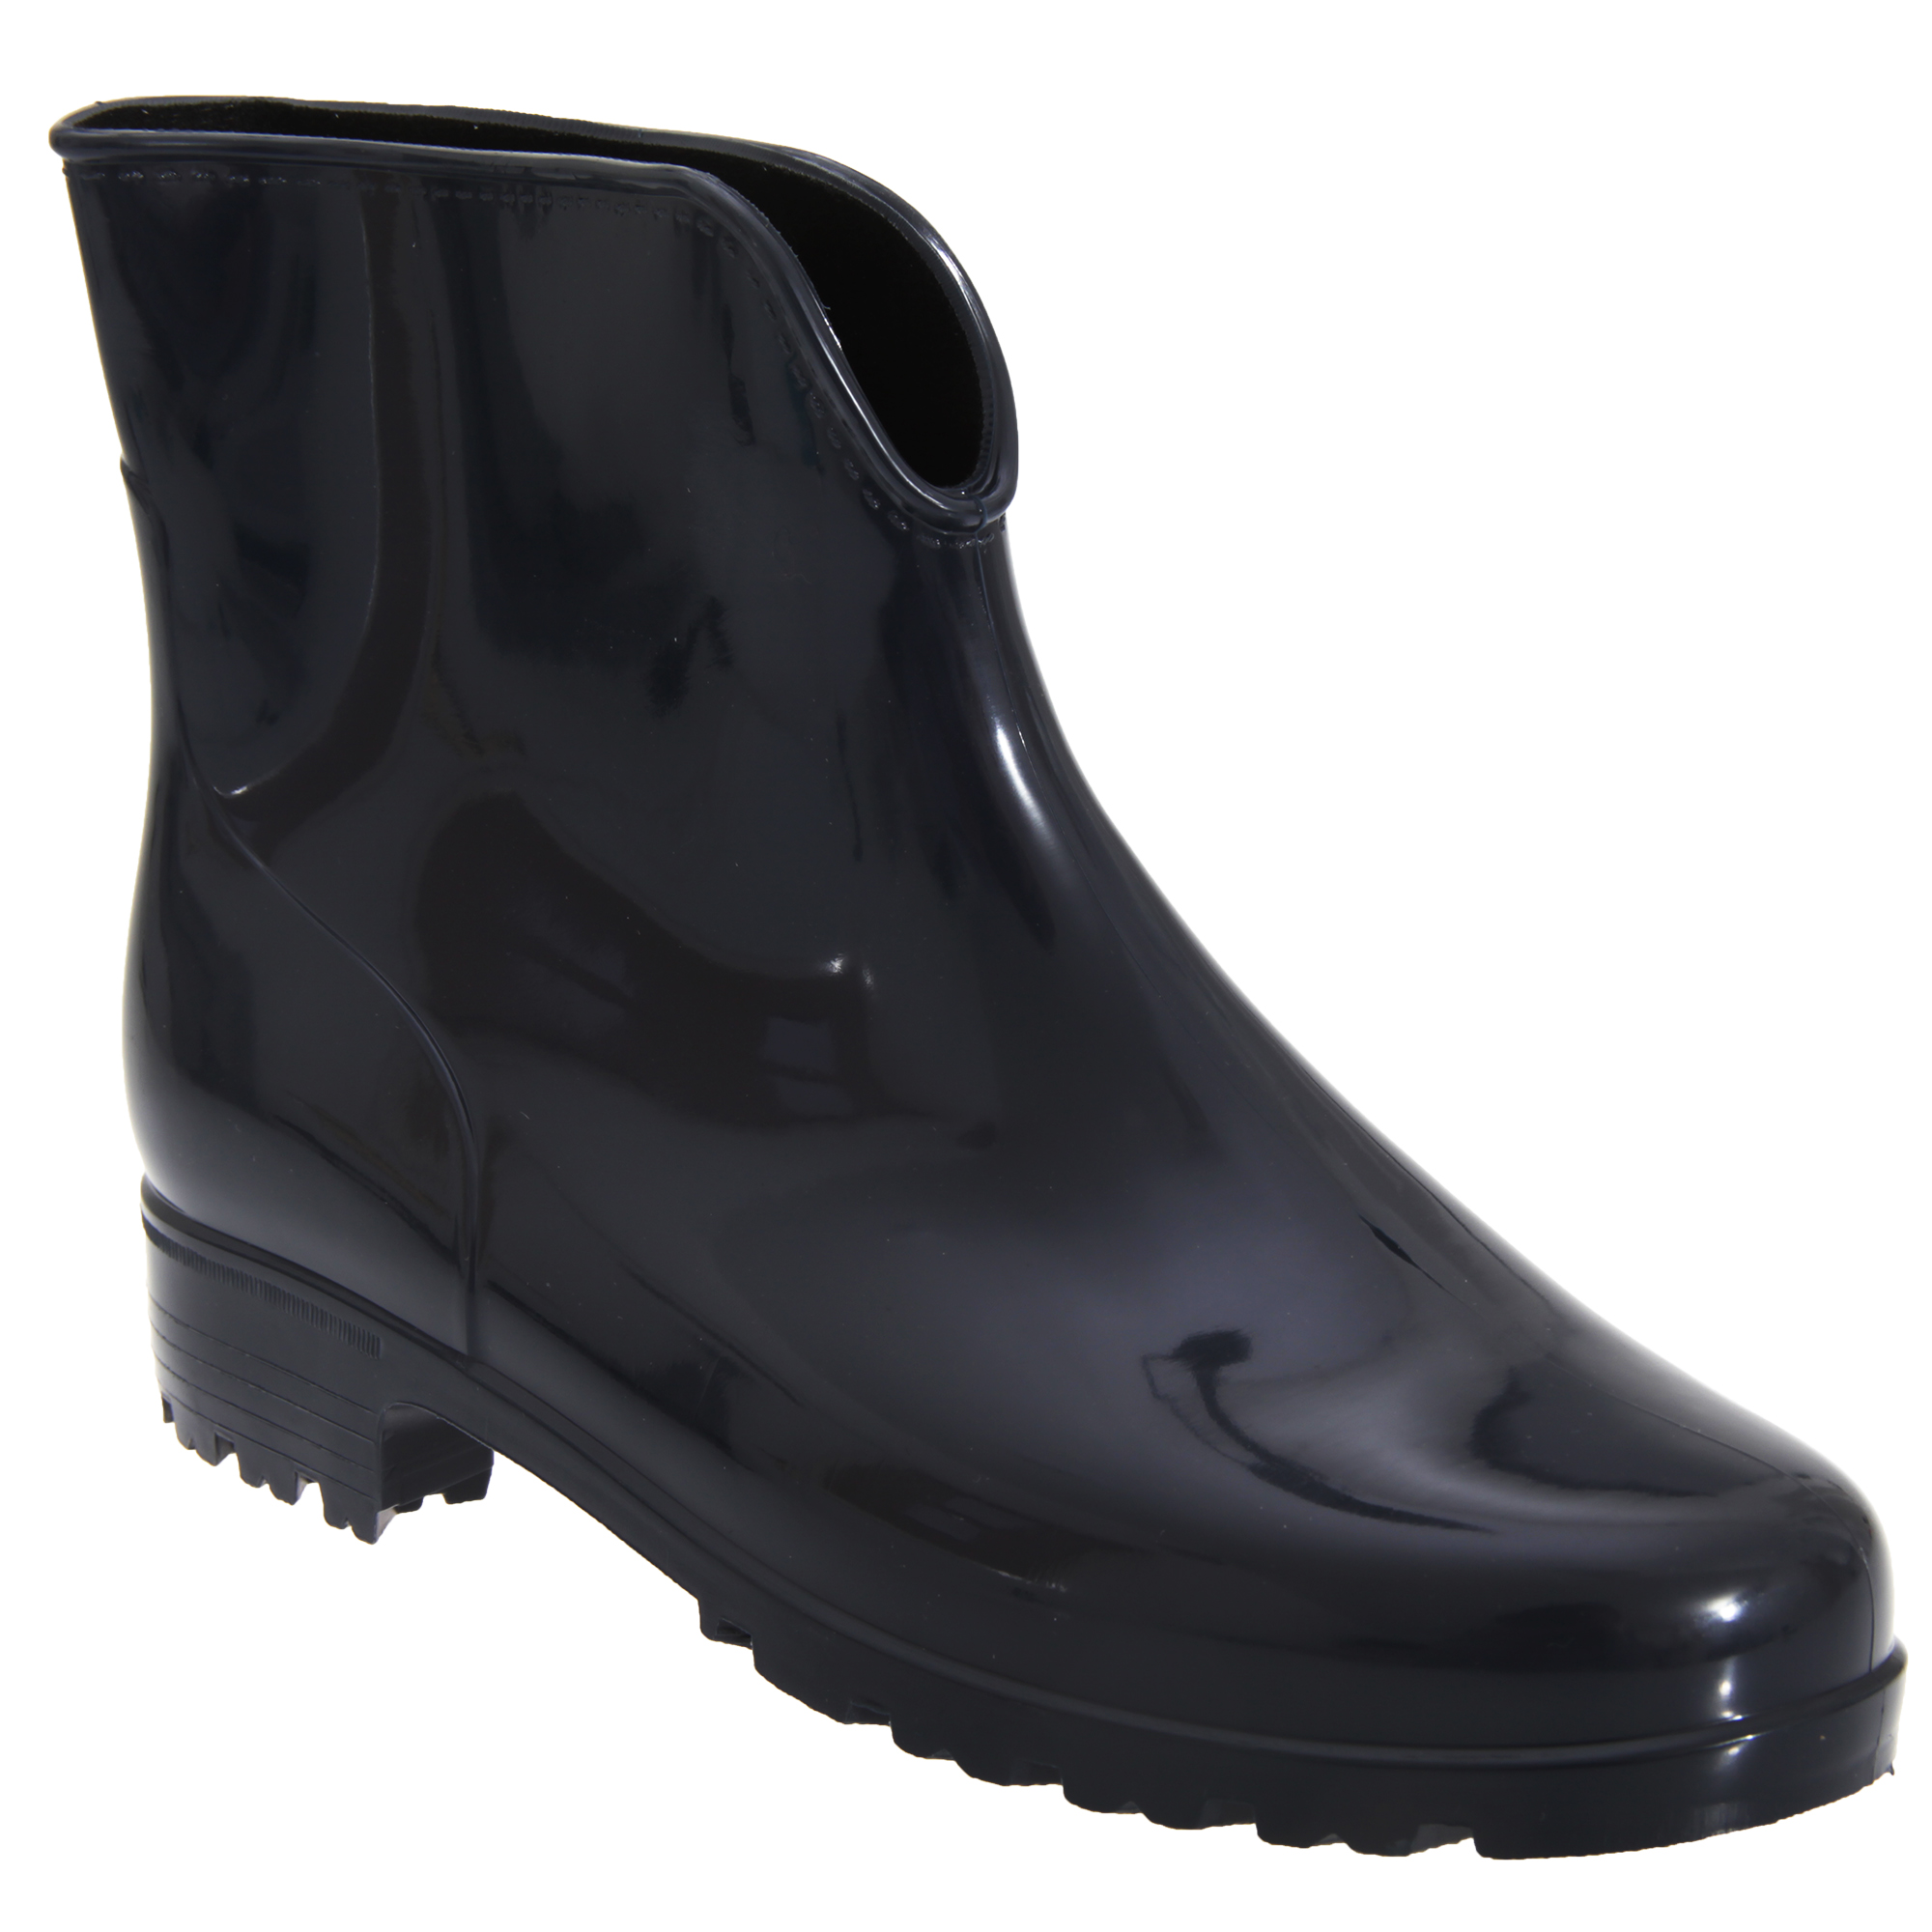 Brilliant Their Comfy Liner And Insole Keep Your Feet Happy, Even After A Day Of Walking Their Generous  The Bogs Crandall Tall Snow Boots For Women Are Sleek, And Stylish Boot Theyre Built To Take On Rai